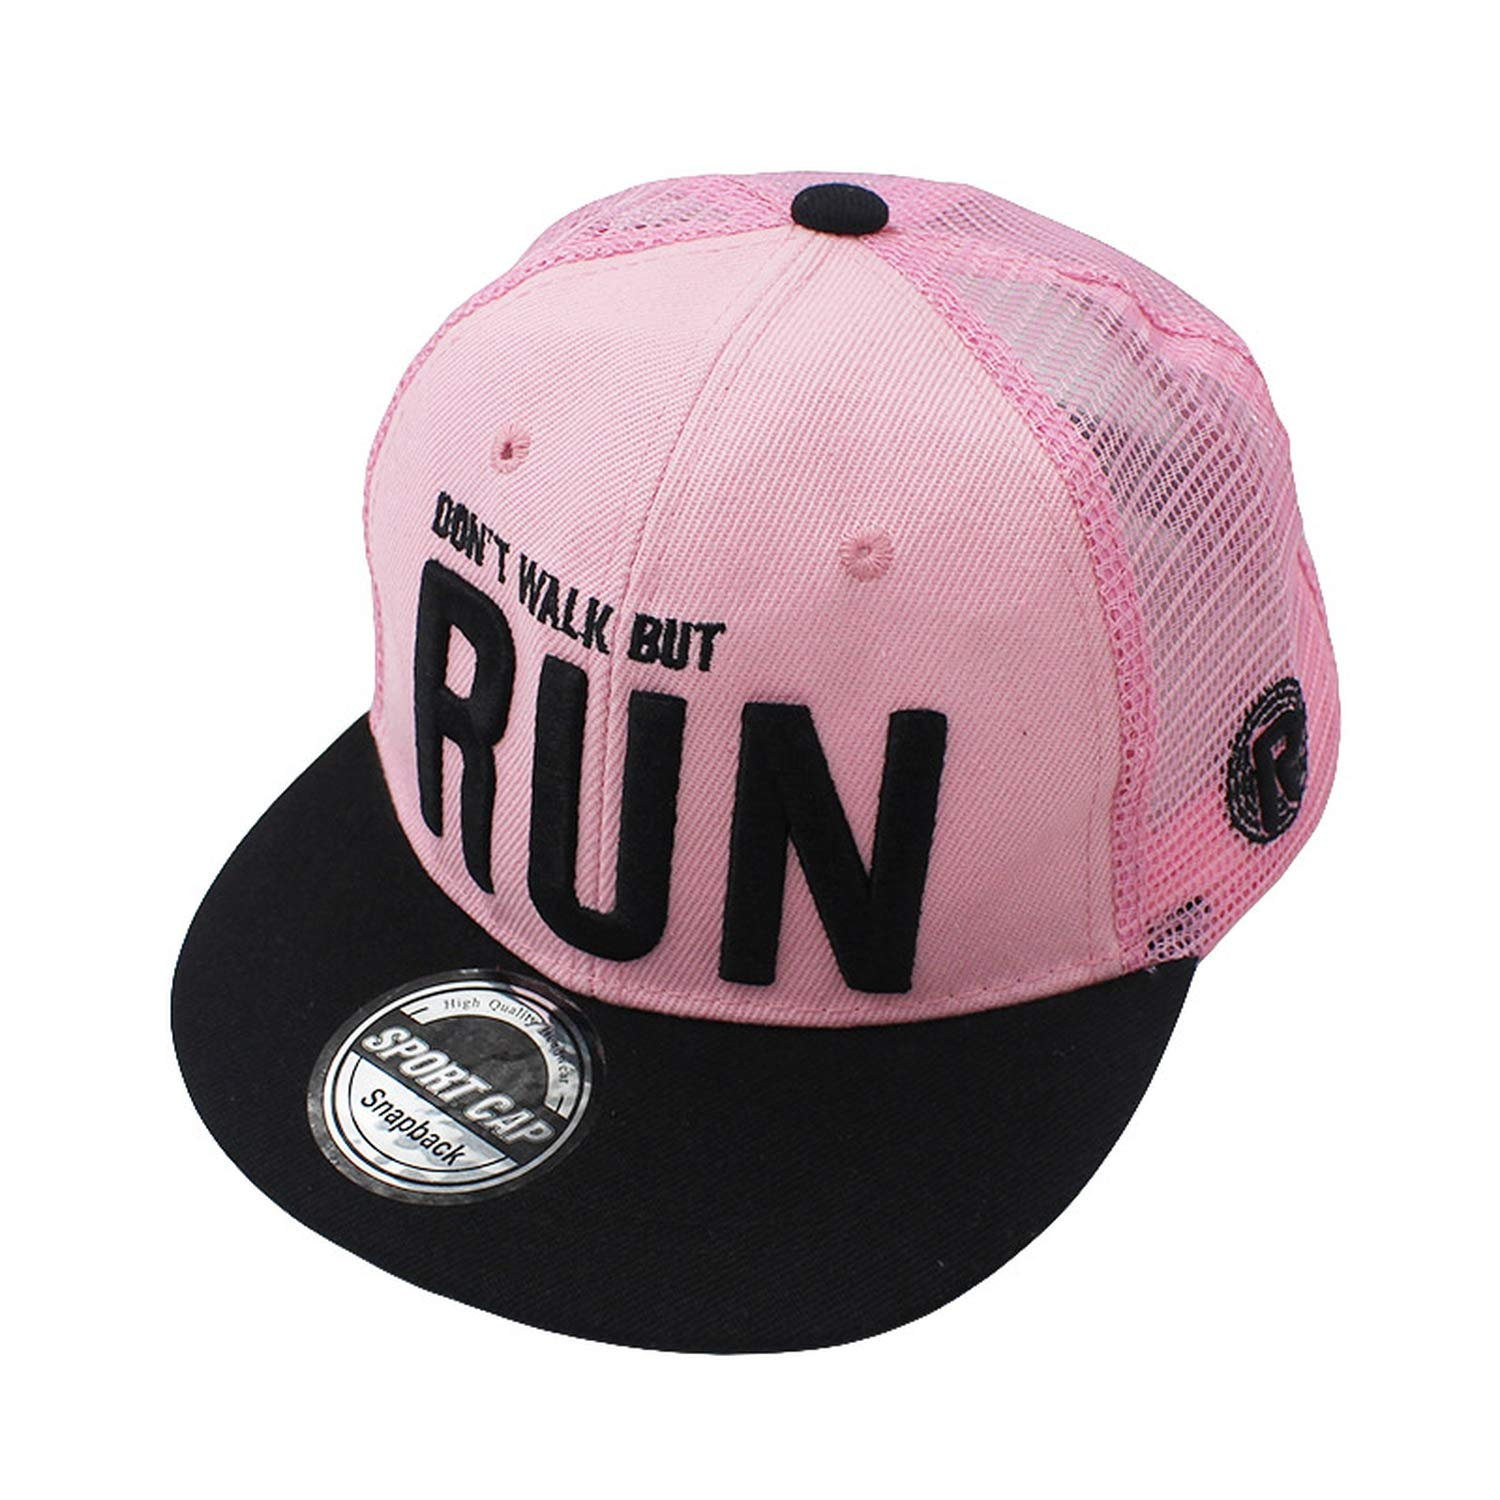 CHENTAI Boy Baseball Caps 3-8 Years Old Kid Letter Design Snapback Caps High Qaulity Adjustable Mesh caps for Girl